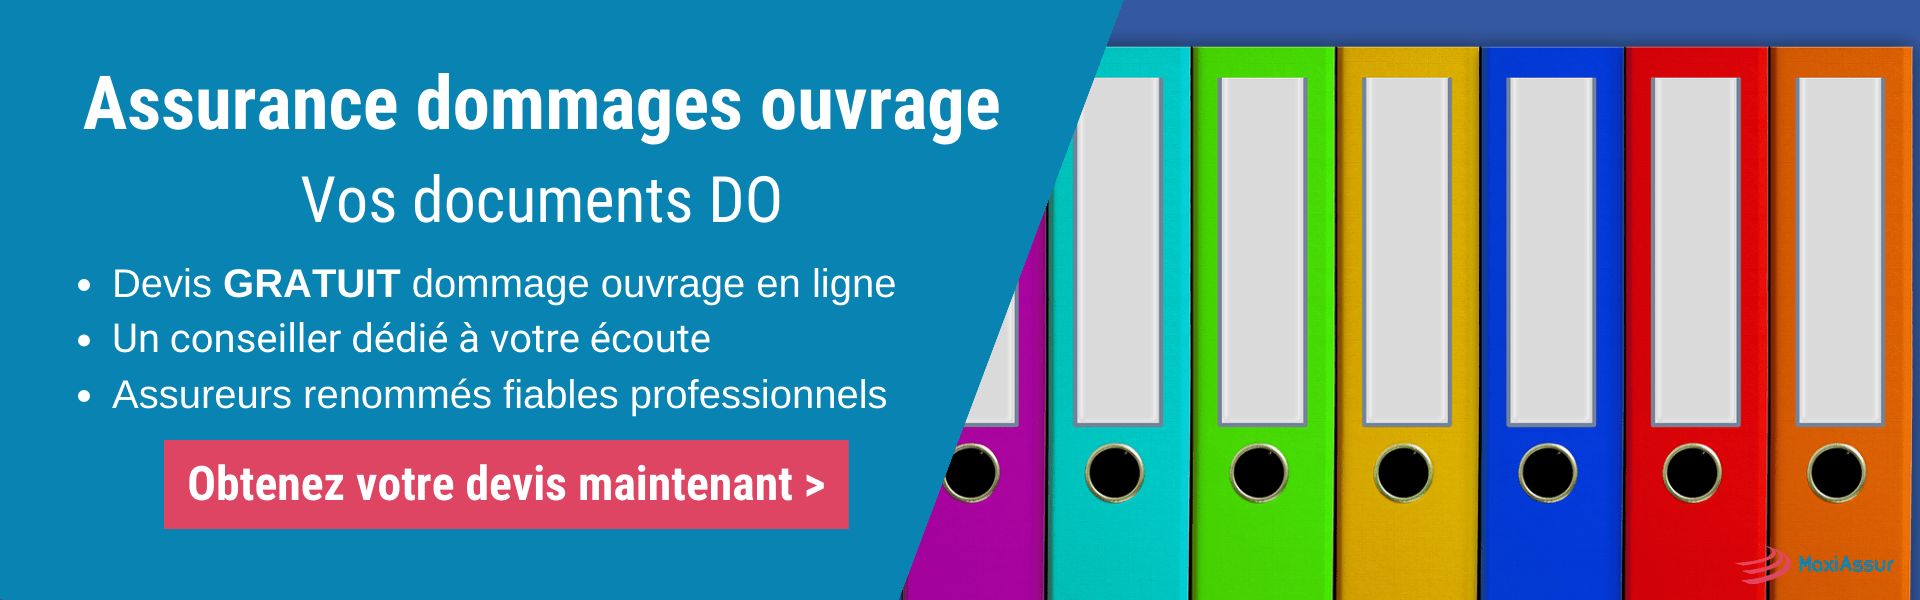 Documents dommage ouvrage